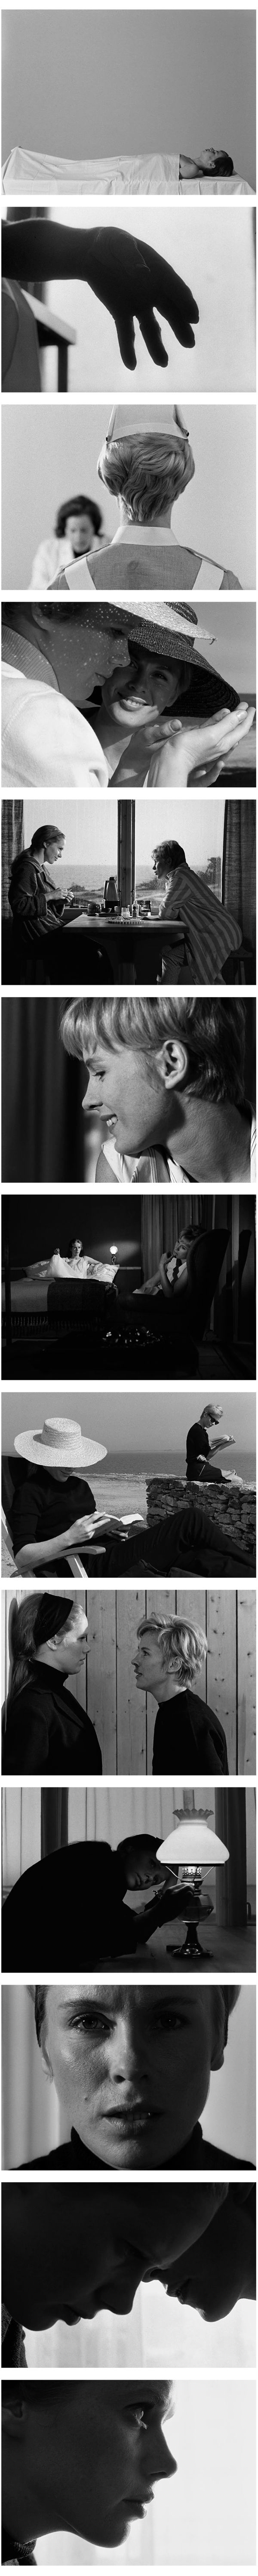 Persona (1966). Directed by Ingmar Bergman. Cinematography by Sven Nykvist.